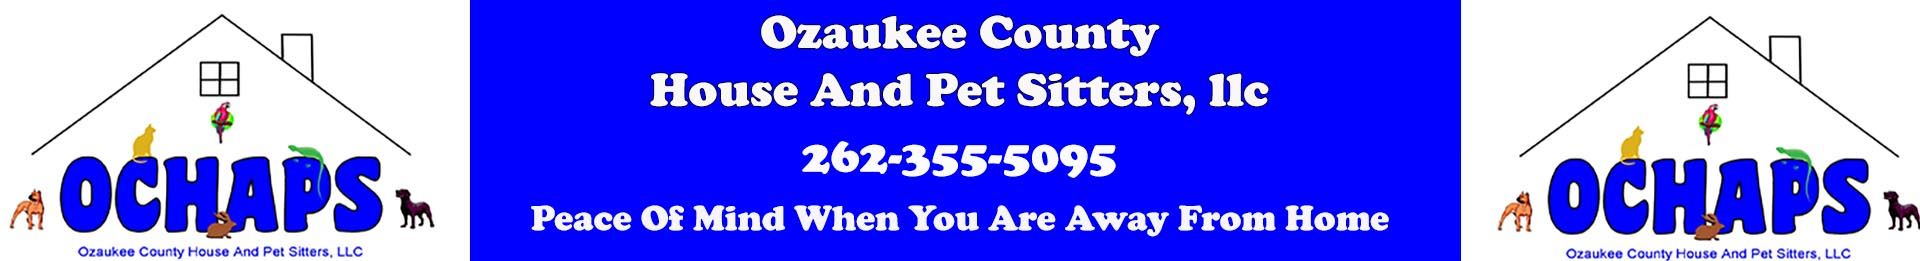 Ozaukee County House and Pet Sitters